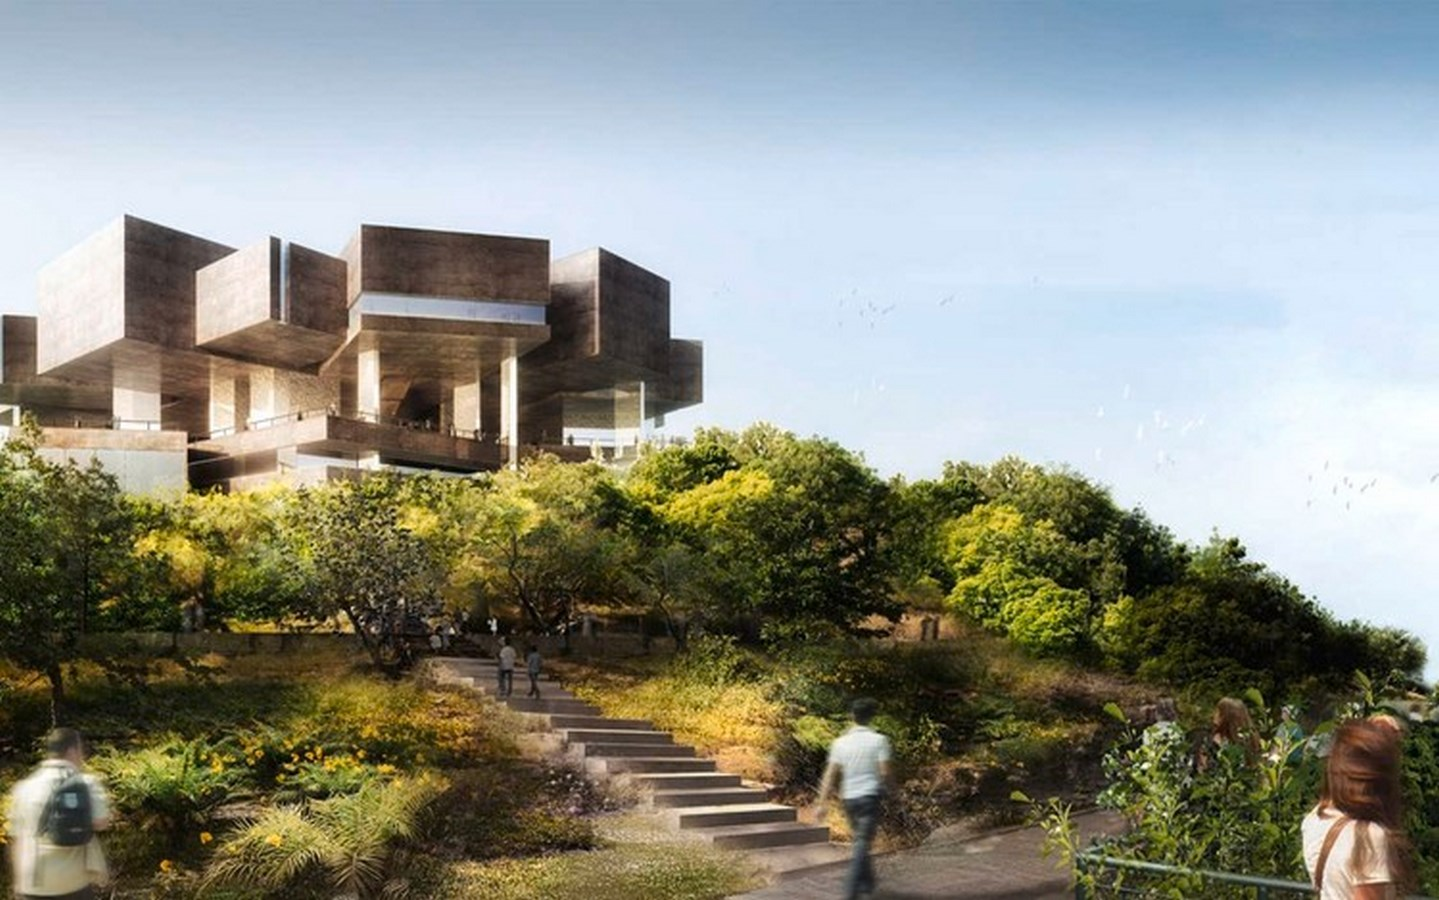 25 Iconic Projects by Herzog & de Meuron every Architect Should Know - BARRANCA MUSEUM OF MODERN AND CONTEMPORARY ART - Sheet2